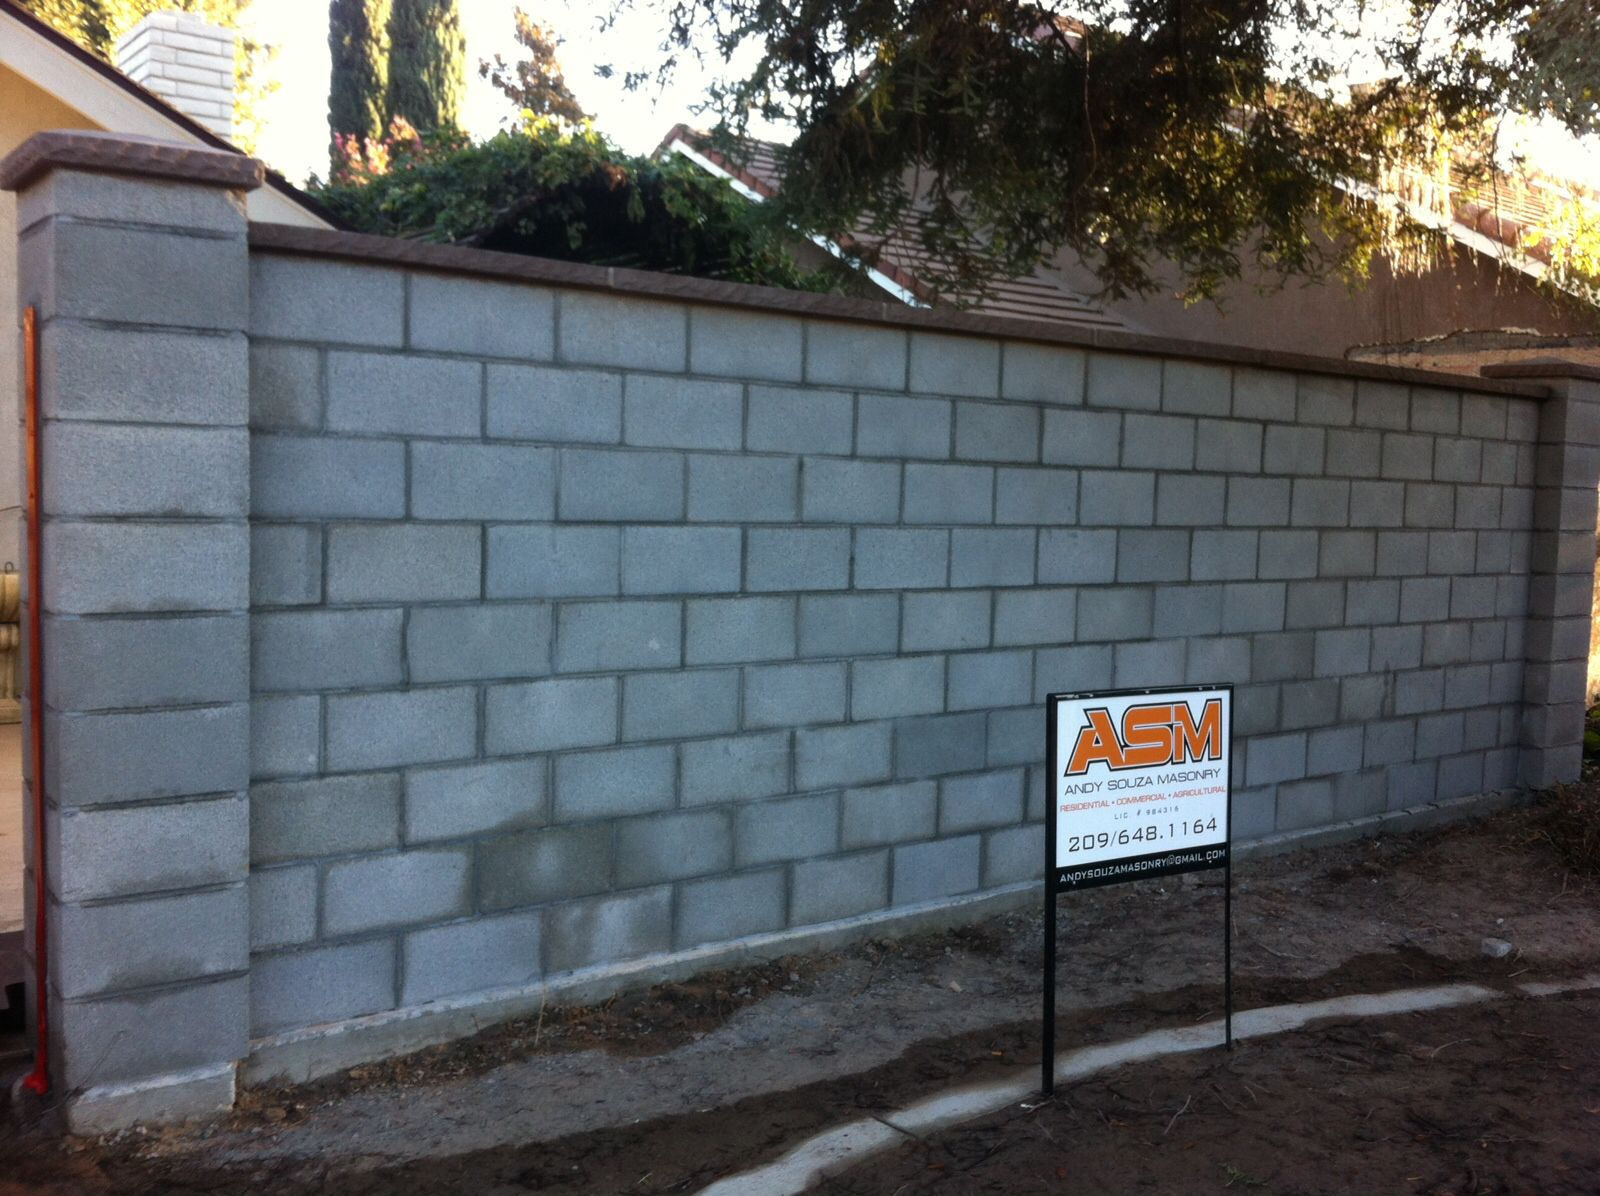 andy souza masonry block wall block fence block design brick post - Masonry Block Wall Design